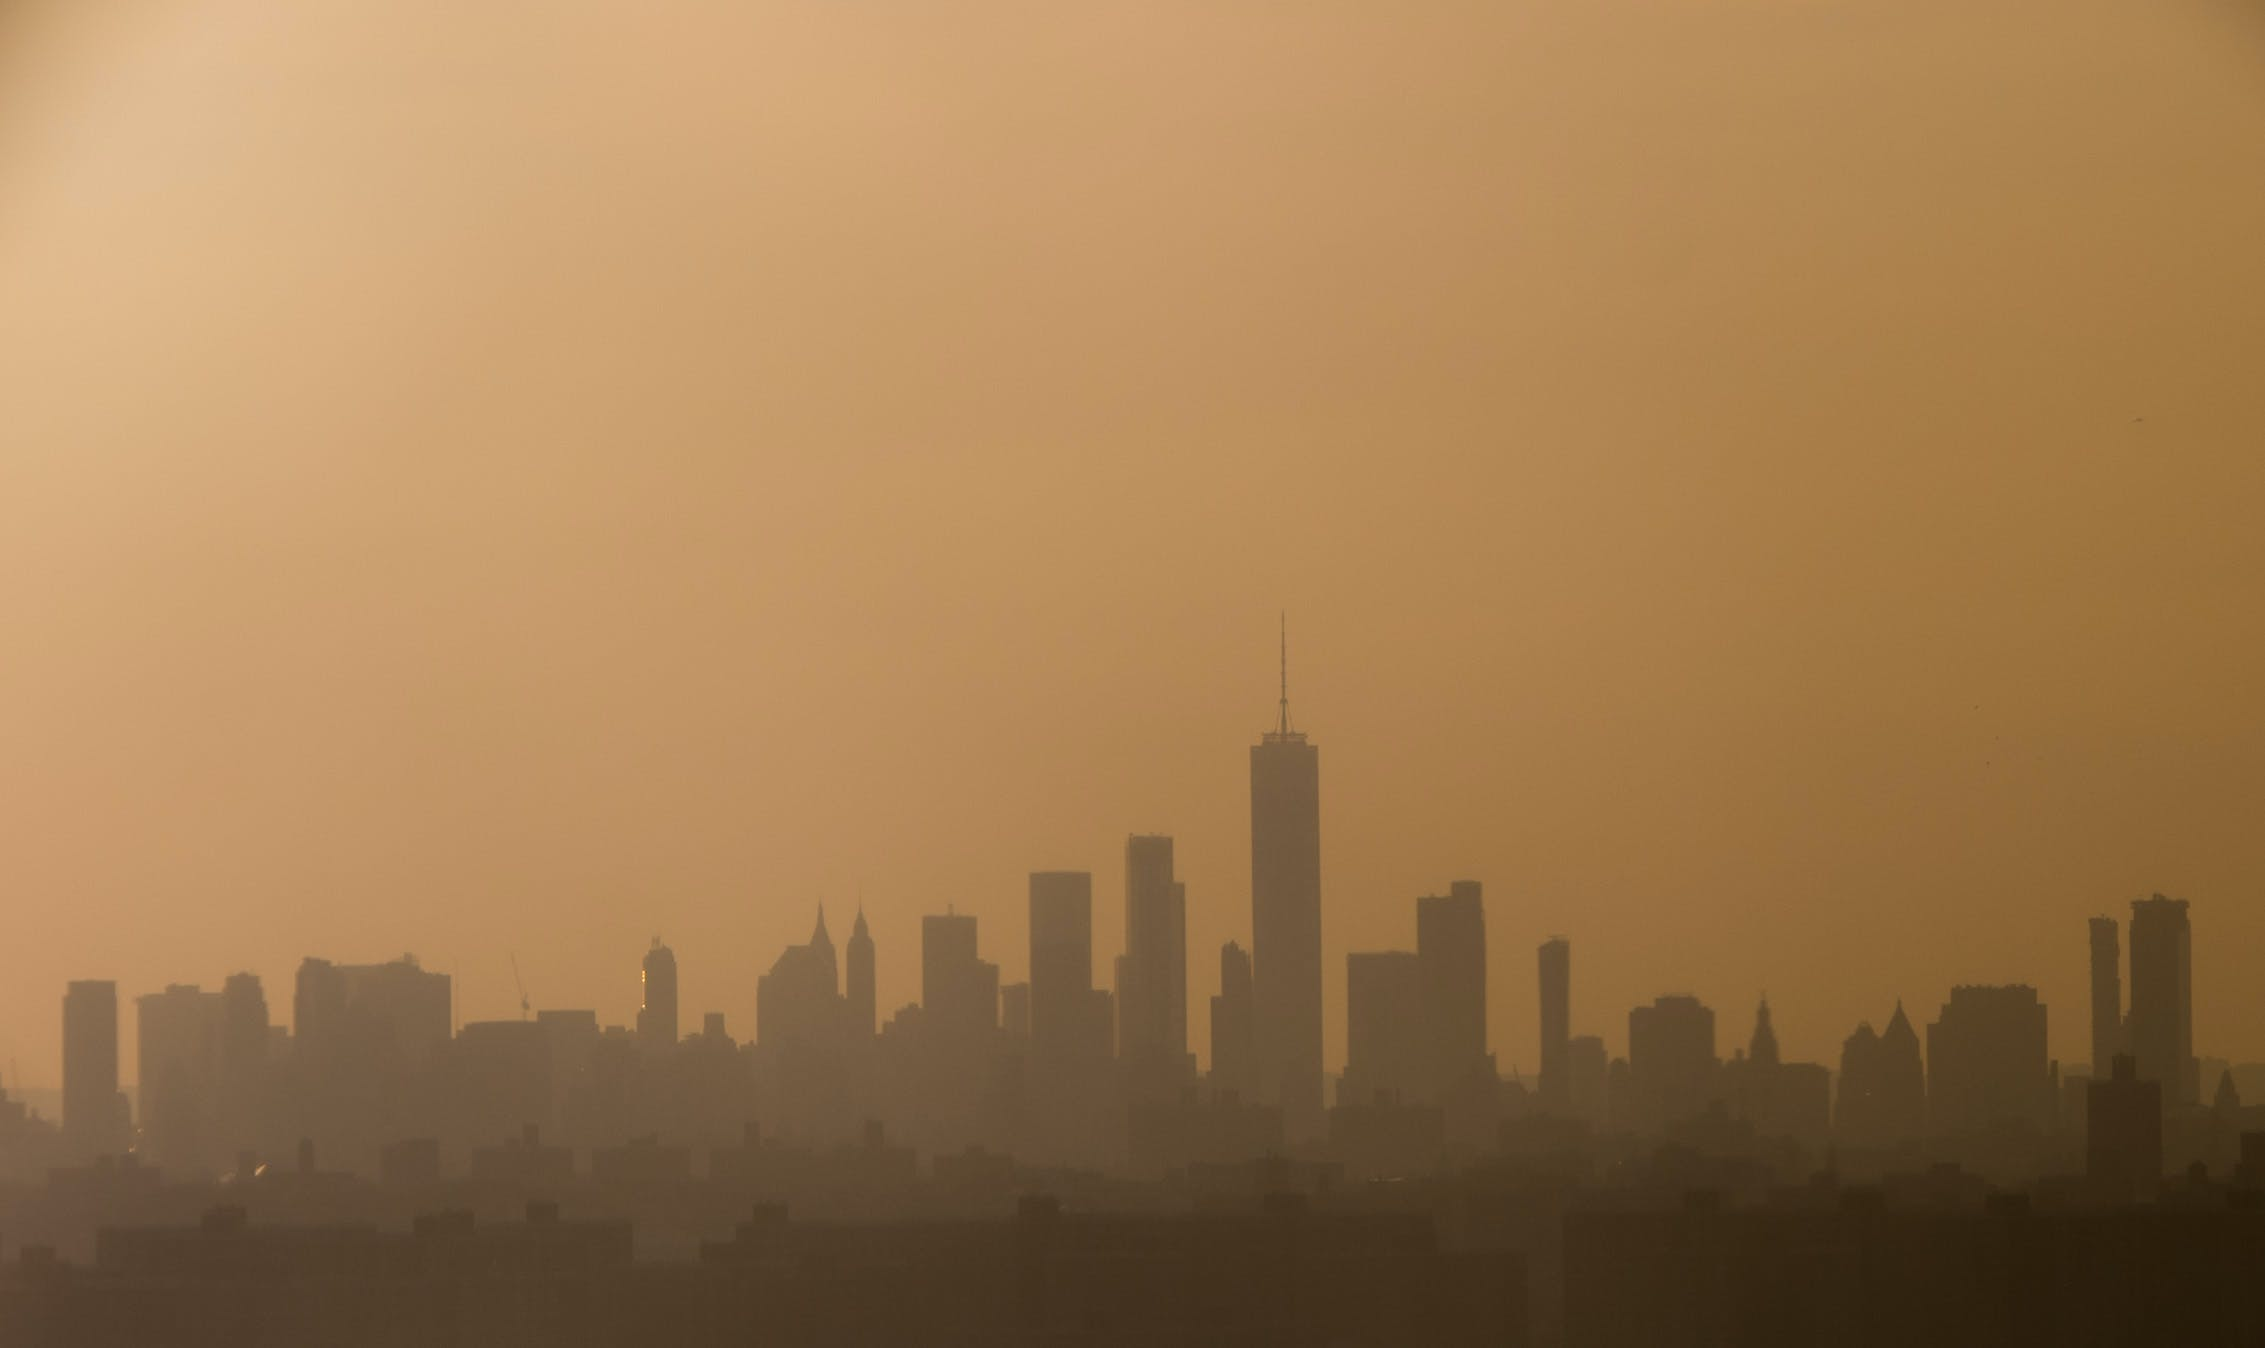 The skyline of Manhattan is seen at sunset in New York, May 23, 2018. (Photo by SAUL LOEB / AFP)        (Photo credit should read SAUL LOEB/AFP/Getty Images)